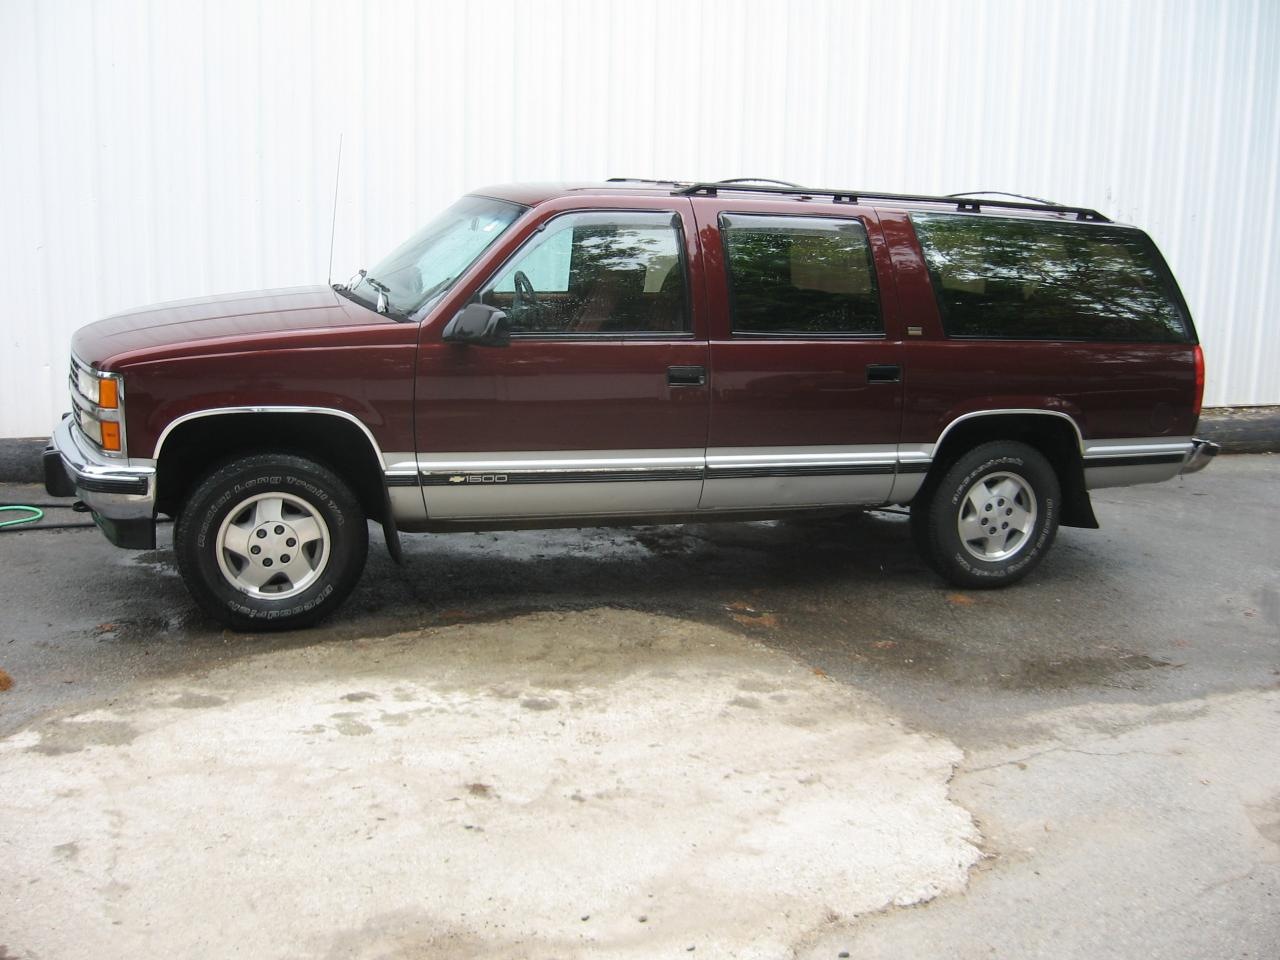 2007 Chevy Suburban Accessories likewise 315 Rv besides Exterior 77875370 likewise Dashboard 67959146 besides K442 Sl. on 1993 chevy suburban 4x4